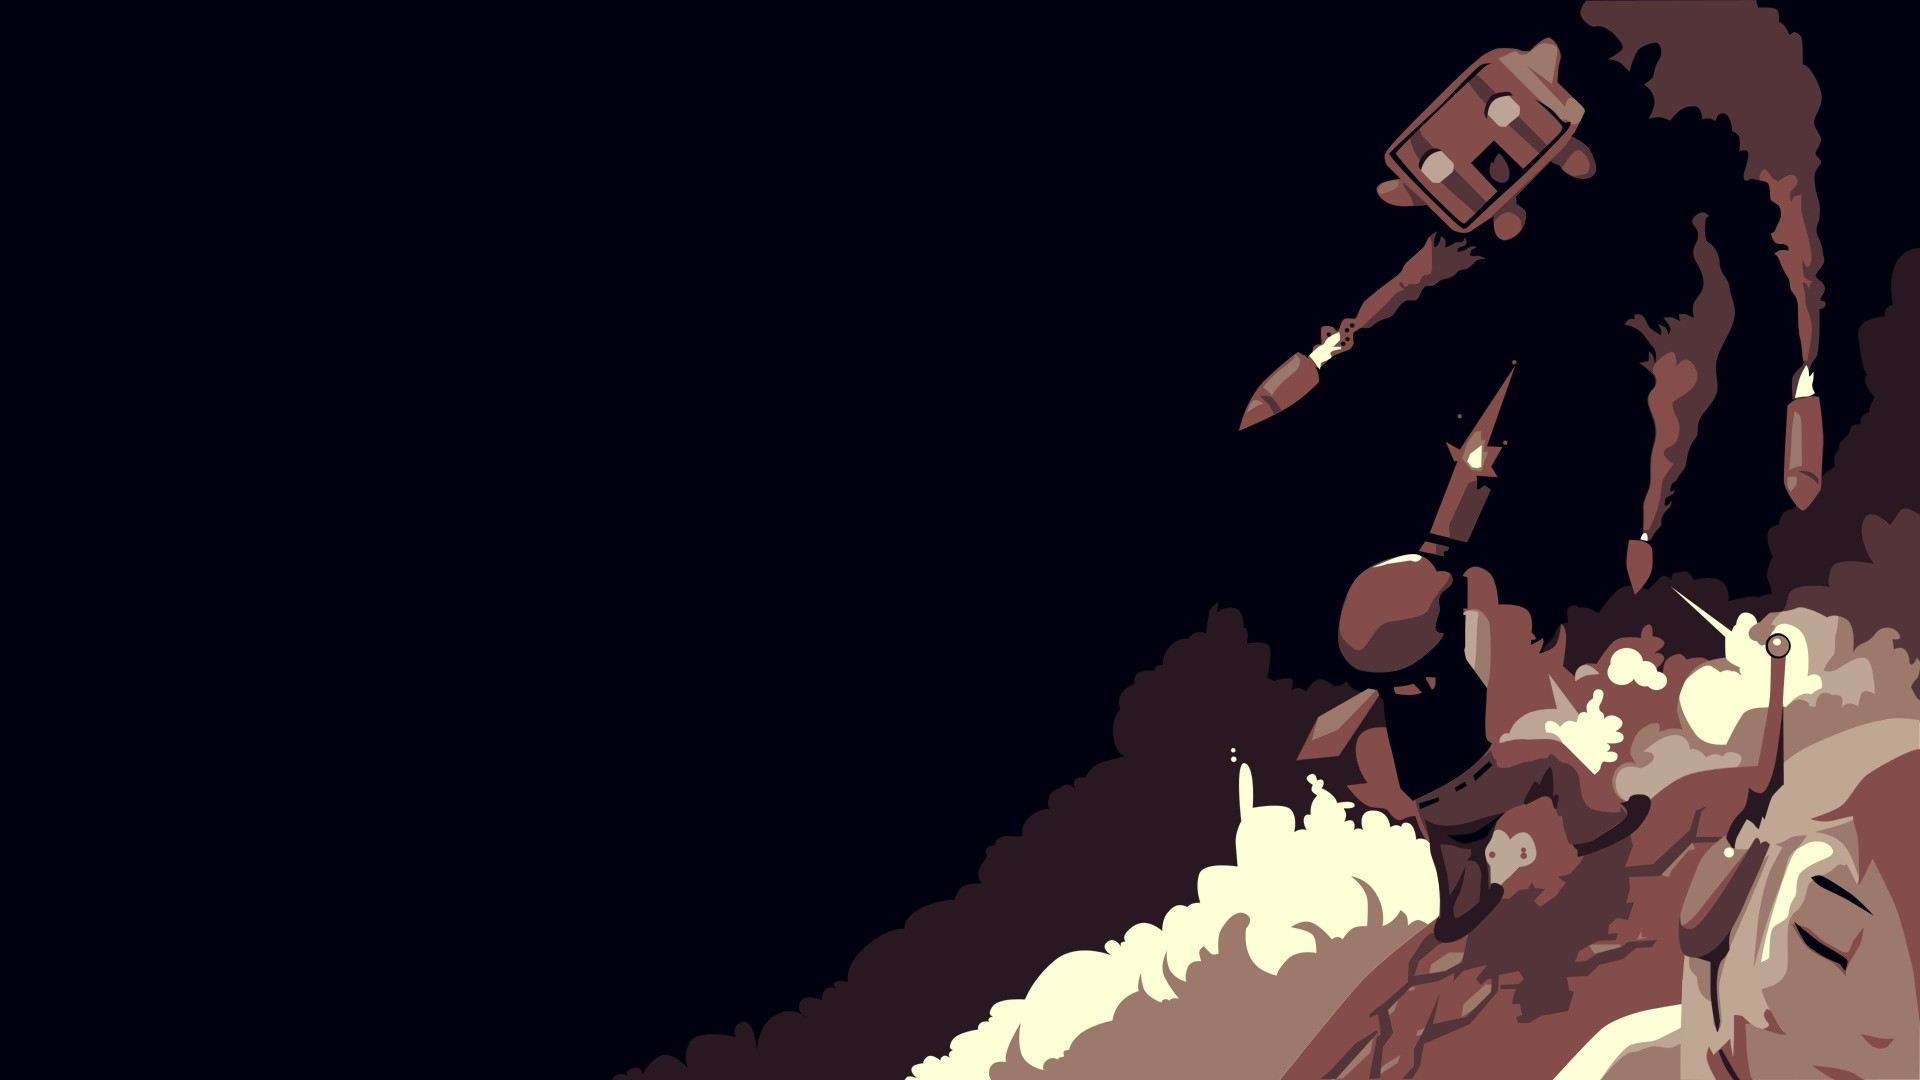 1920x1080  Wallpaper cave story, character, missiles, explosion, graphics